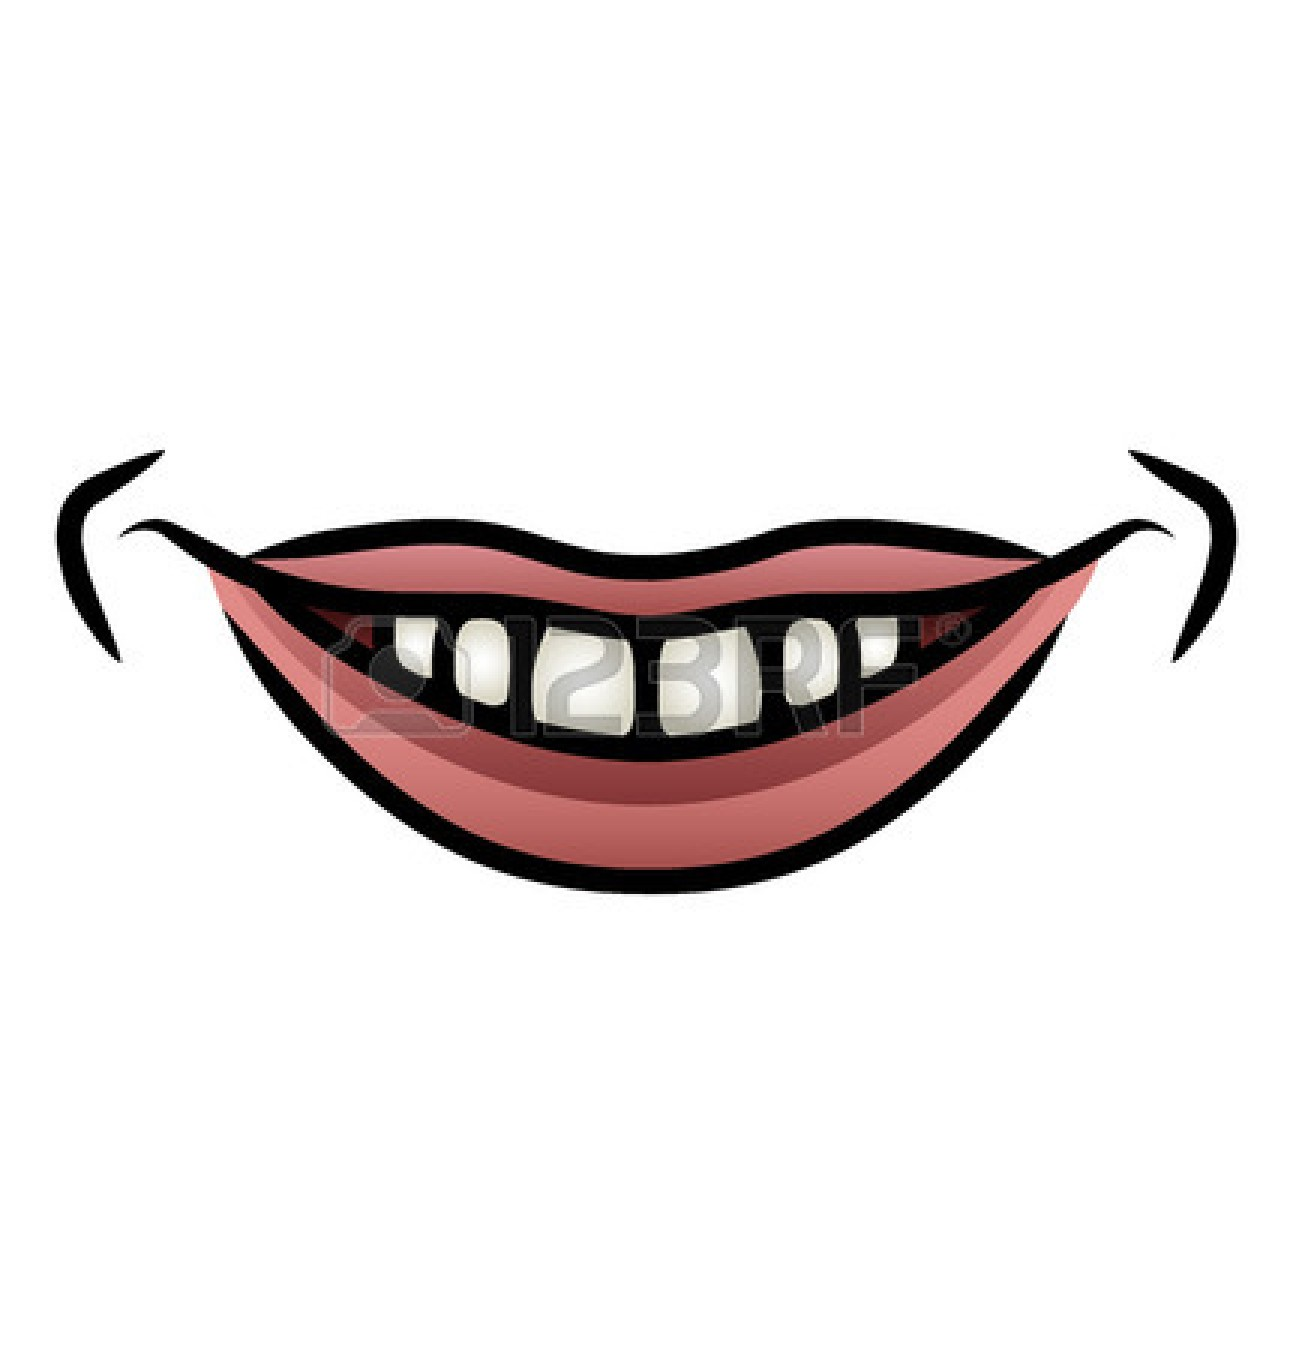 Smile panda free images. Clipart mouth toothy grin